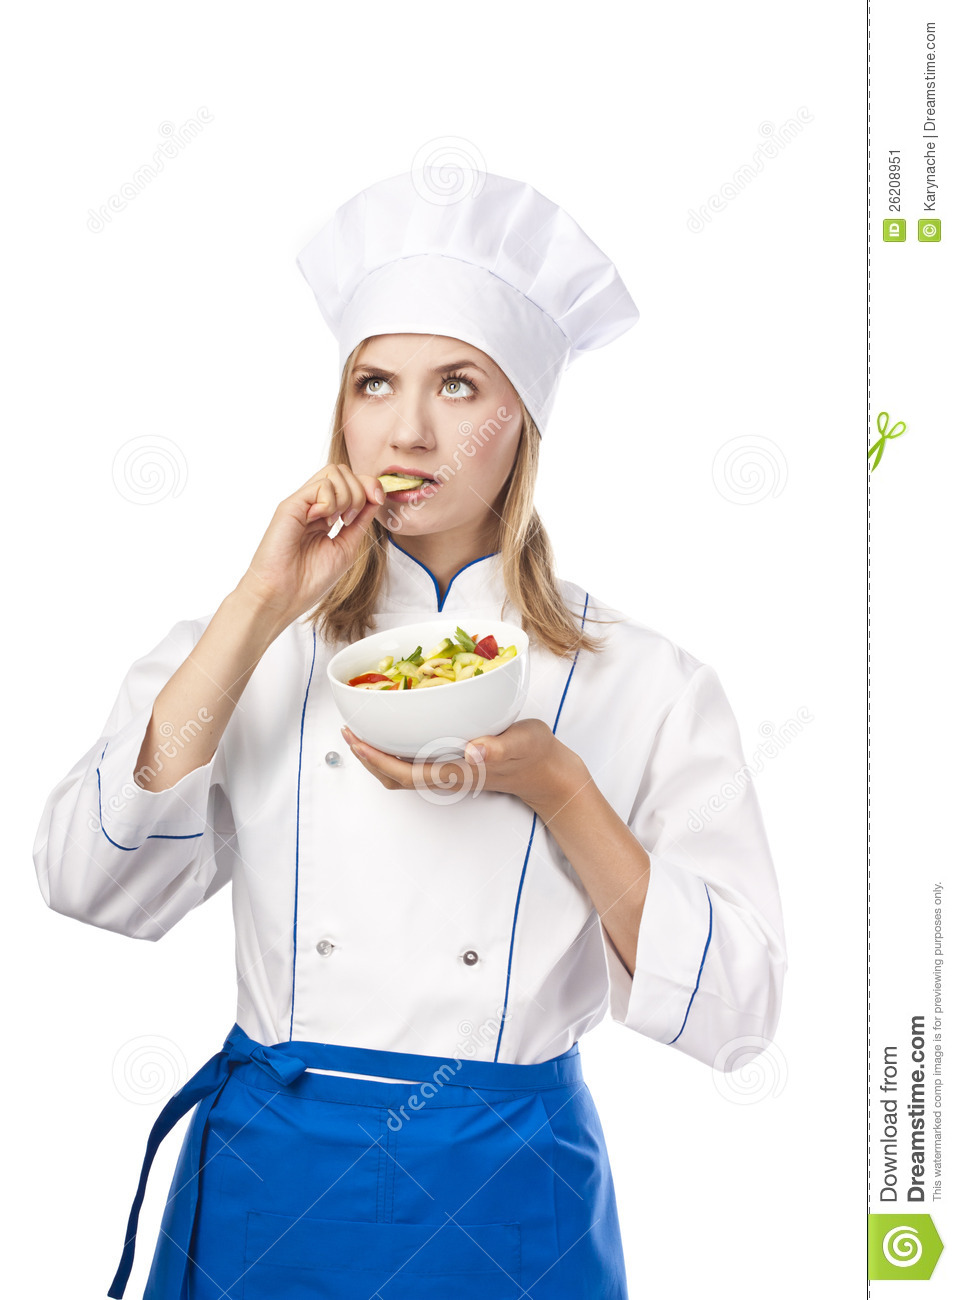 Chef Taste Food Stock Image Image 26208951